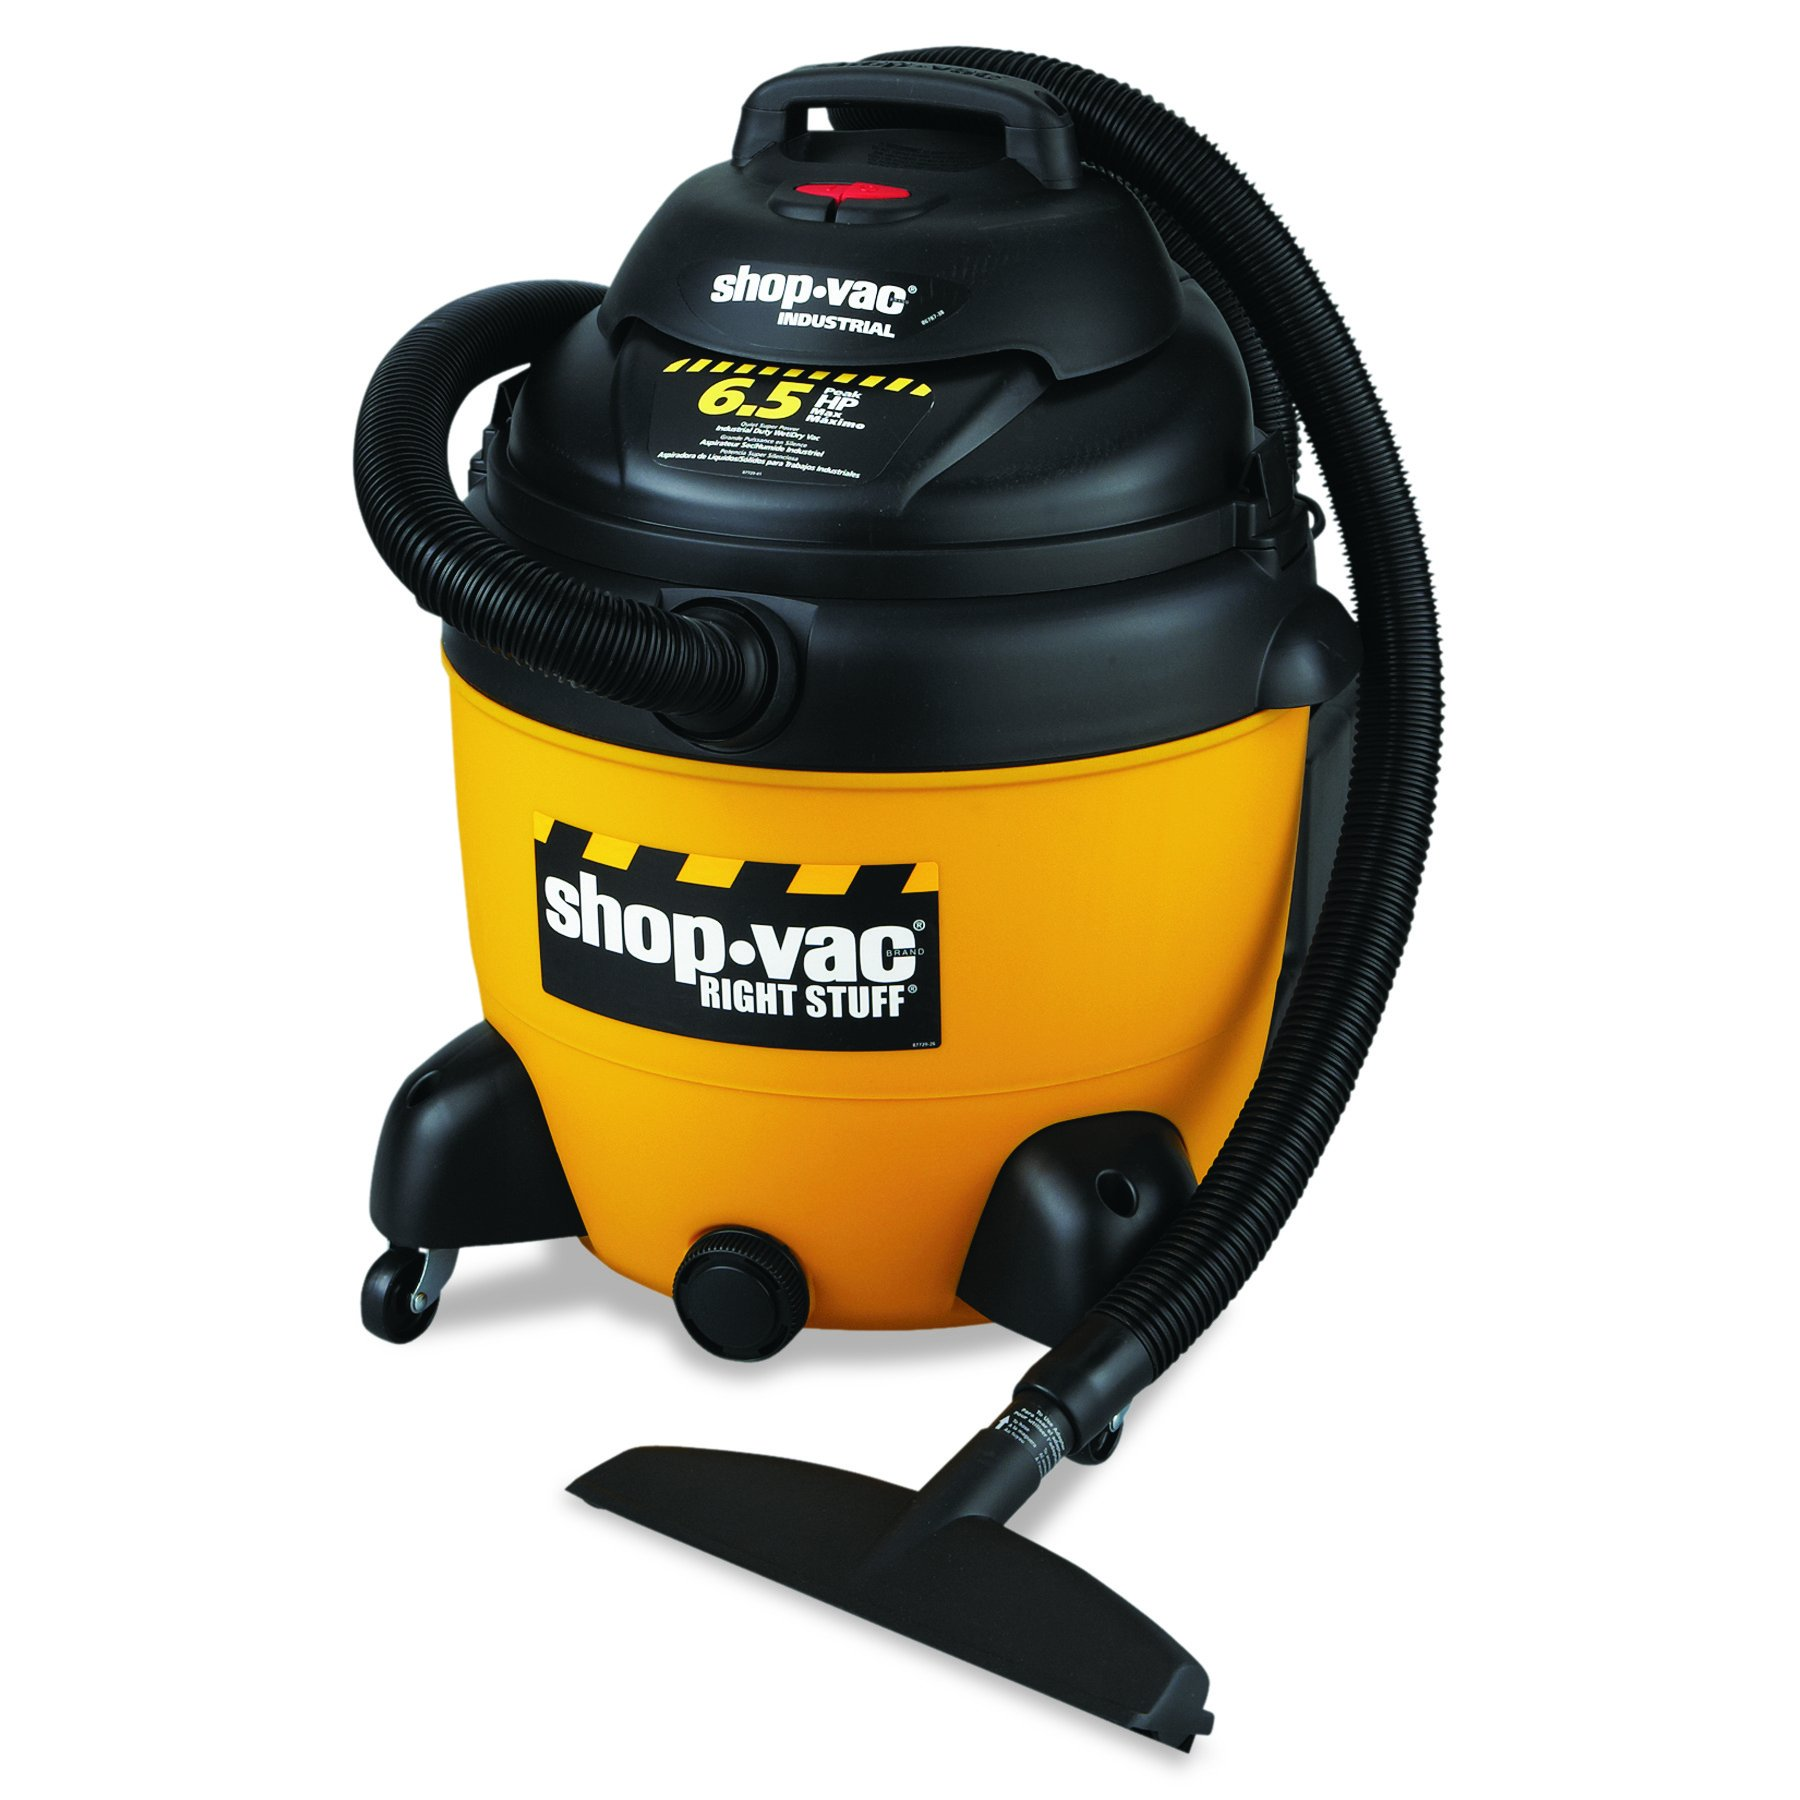 Shop-Vac 677-962-53-10 SHO9625310 Industrial Wet/Dry Vacuum, 18 gal, 6.5 Peak HP, Yellow/Black